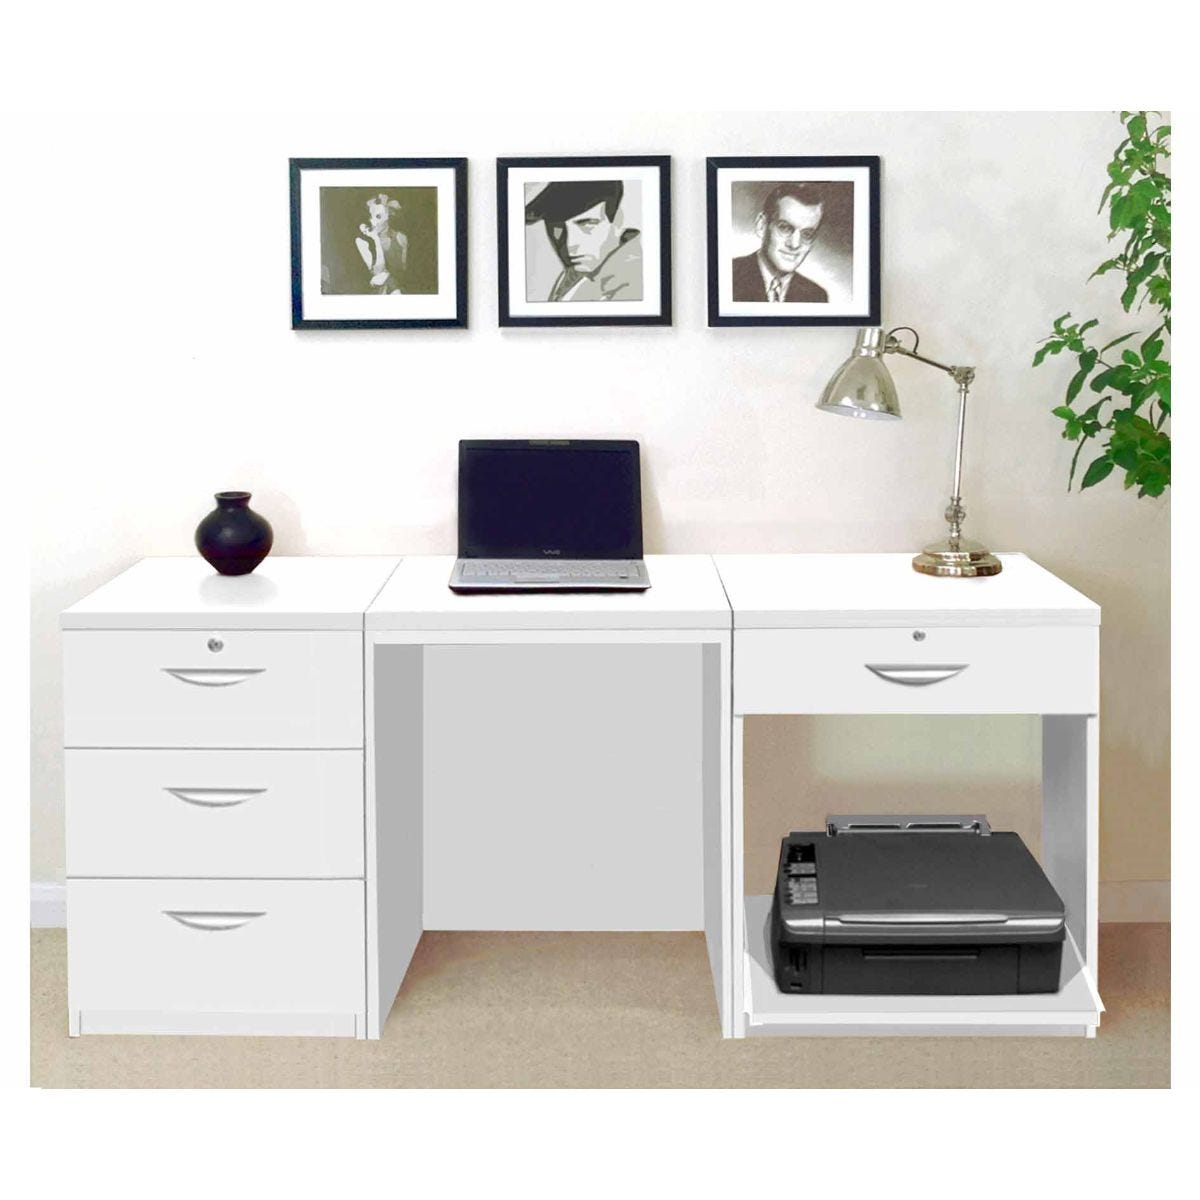 R White Home Office Furniture Desk Set, White Satin